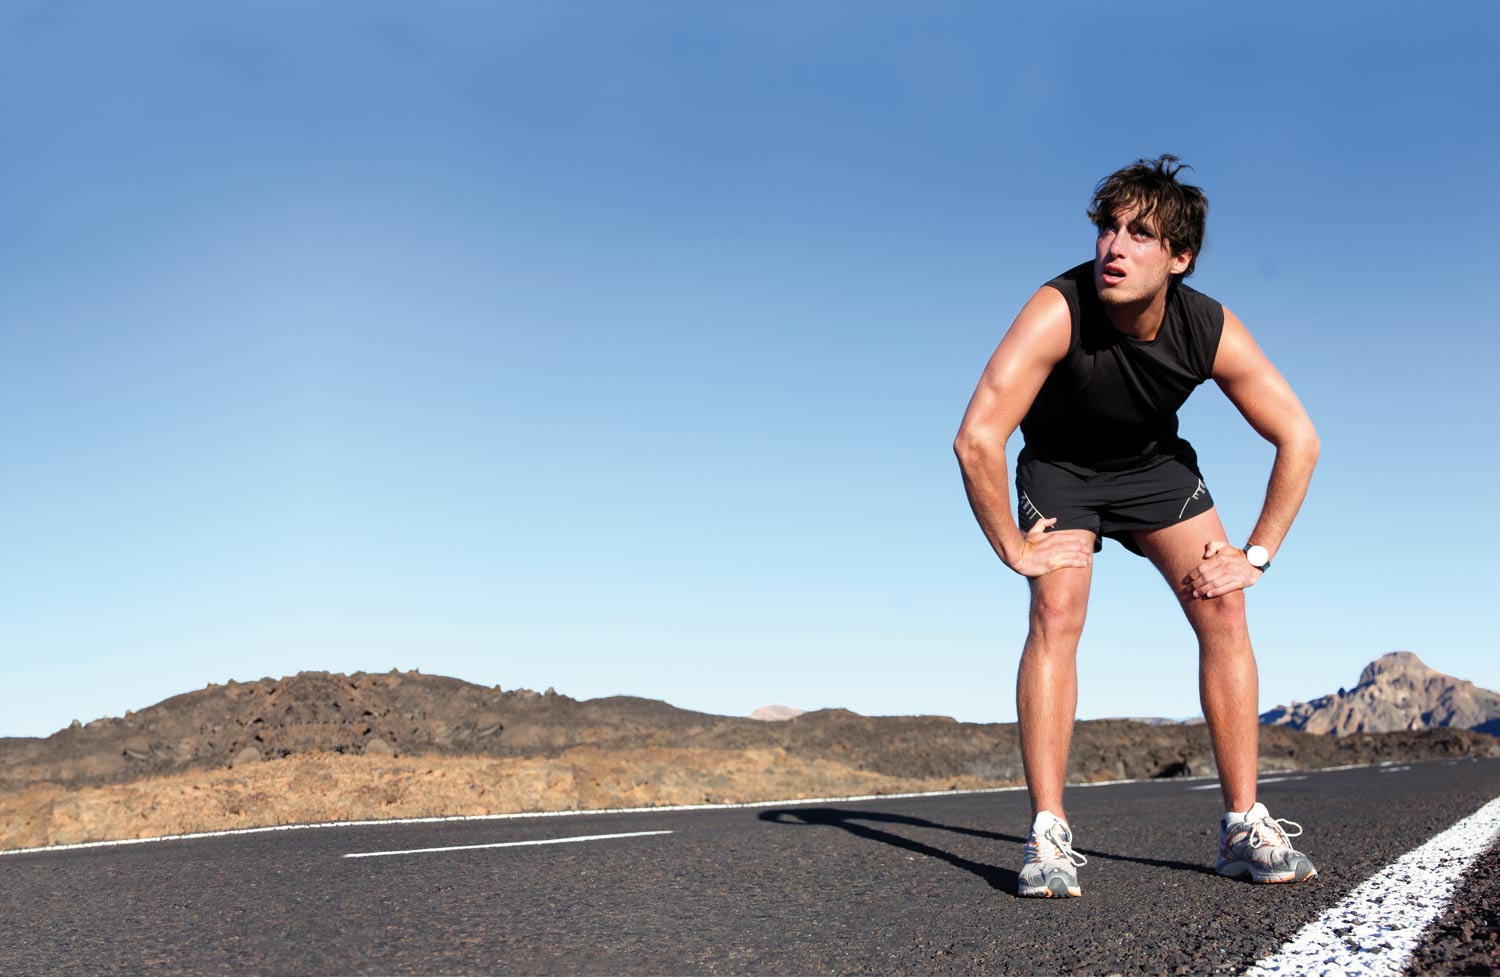 Popular misconceptions about fitness